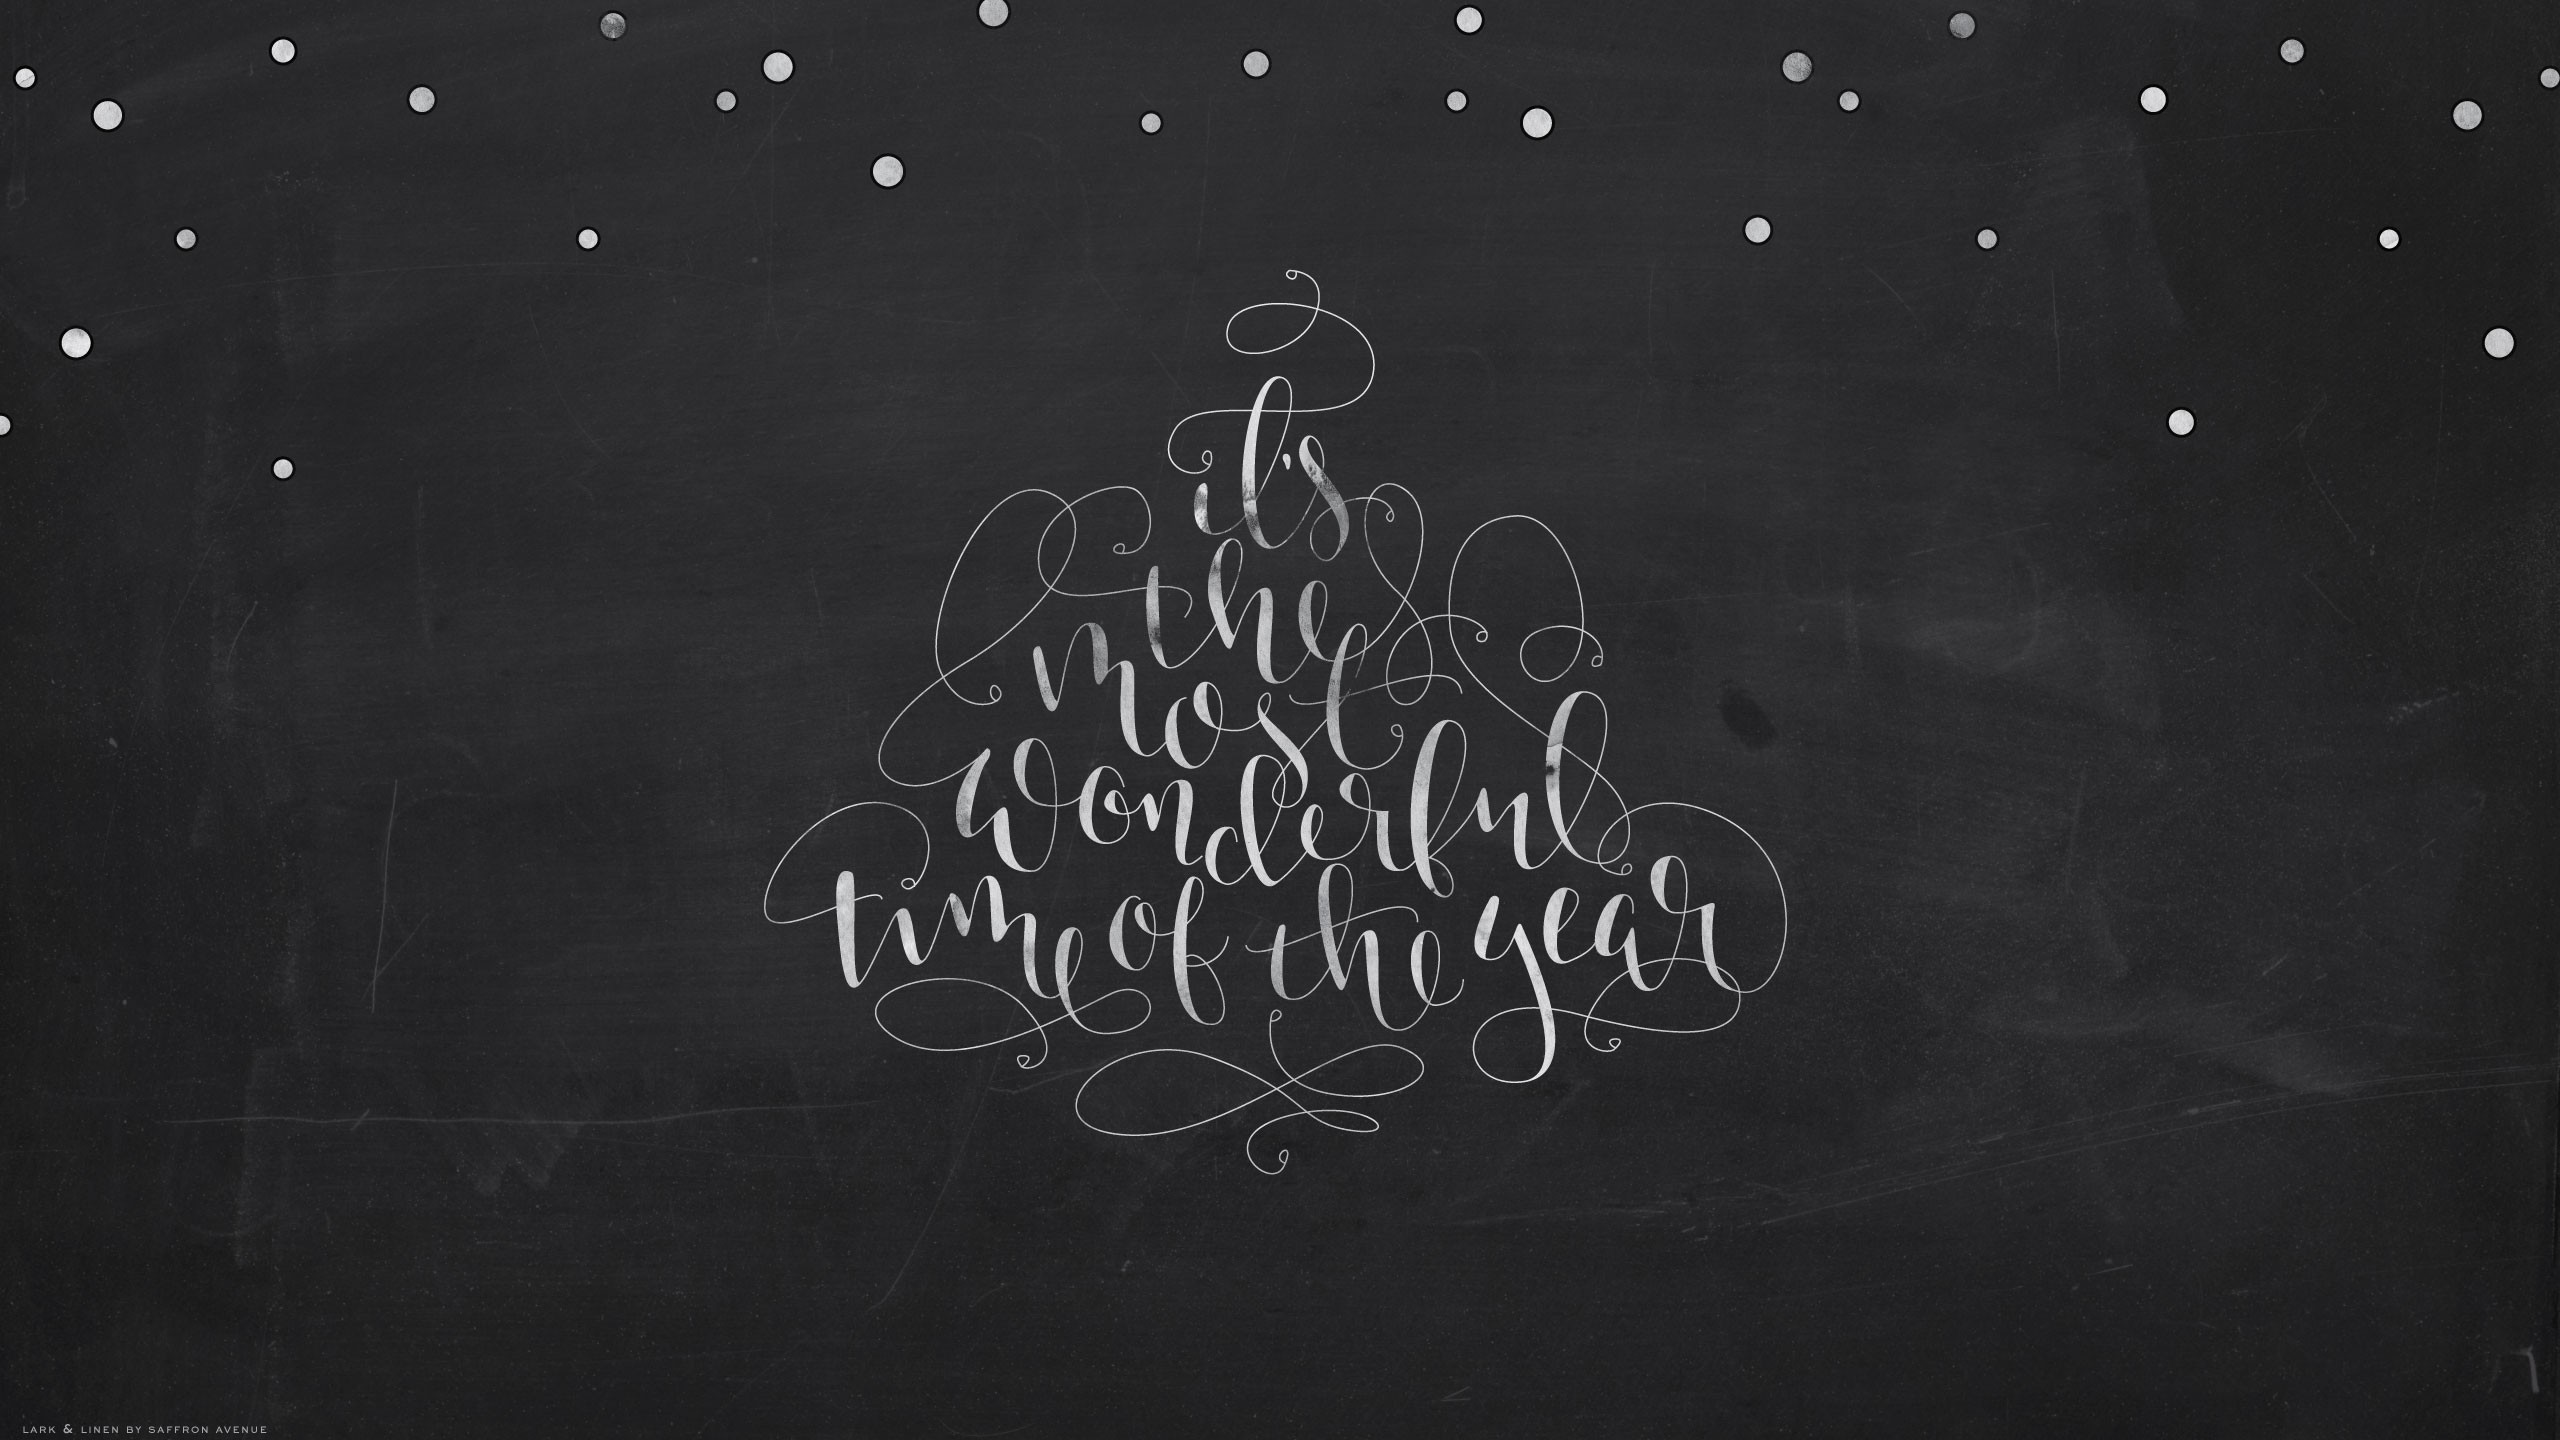 Chalkboard Wallpaper Photo z19 2560x1440 px 44051 KB Other 2560x1440